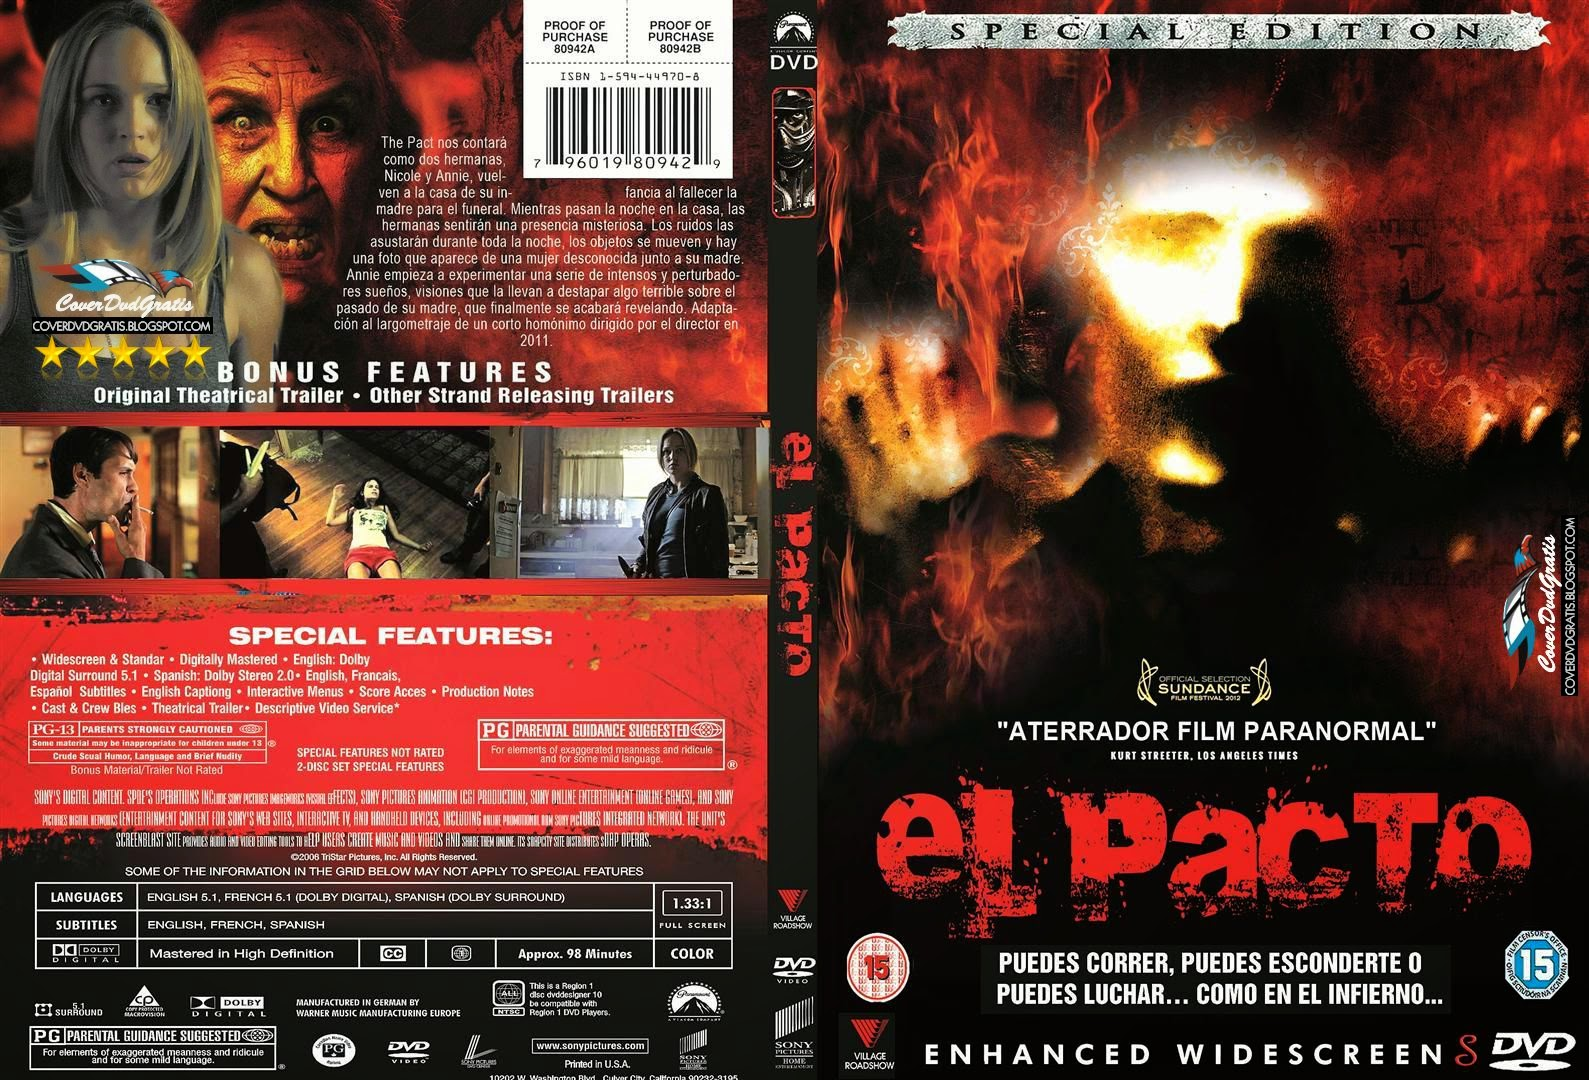 The pact dvd cover coverdvdgratis for El mural pelicula descargar